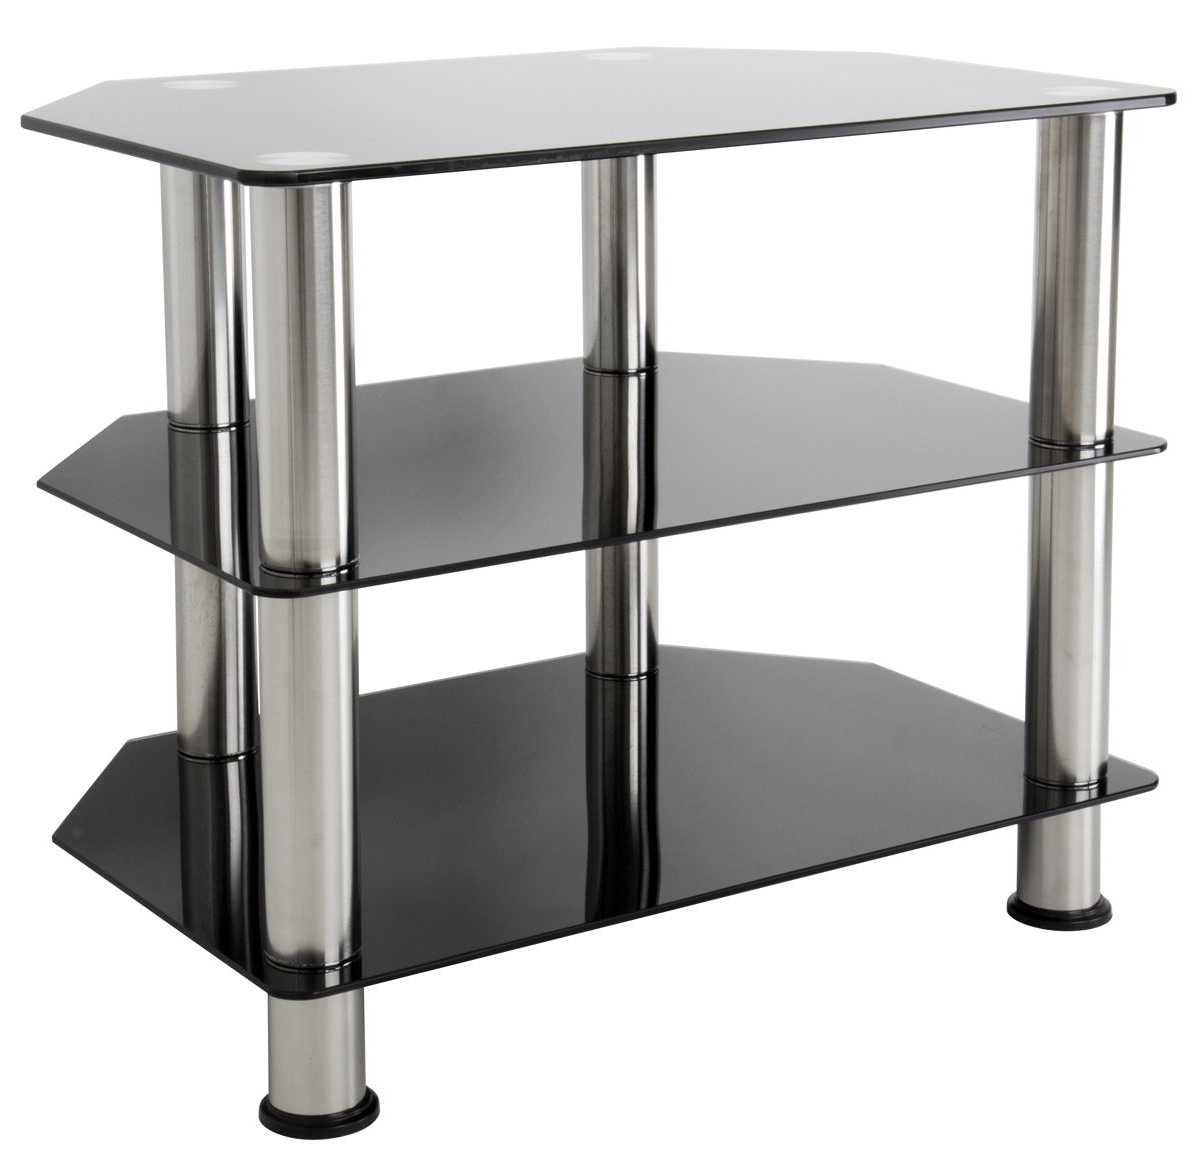 Black Glass Tv Stands Inside Preferred Avf Sdc600 Tv Stands (View 13 of 20)